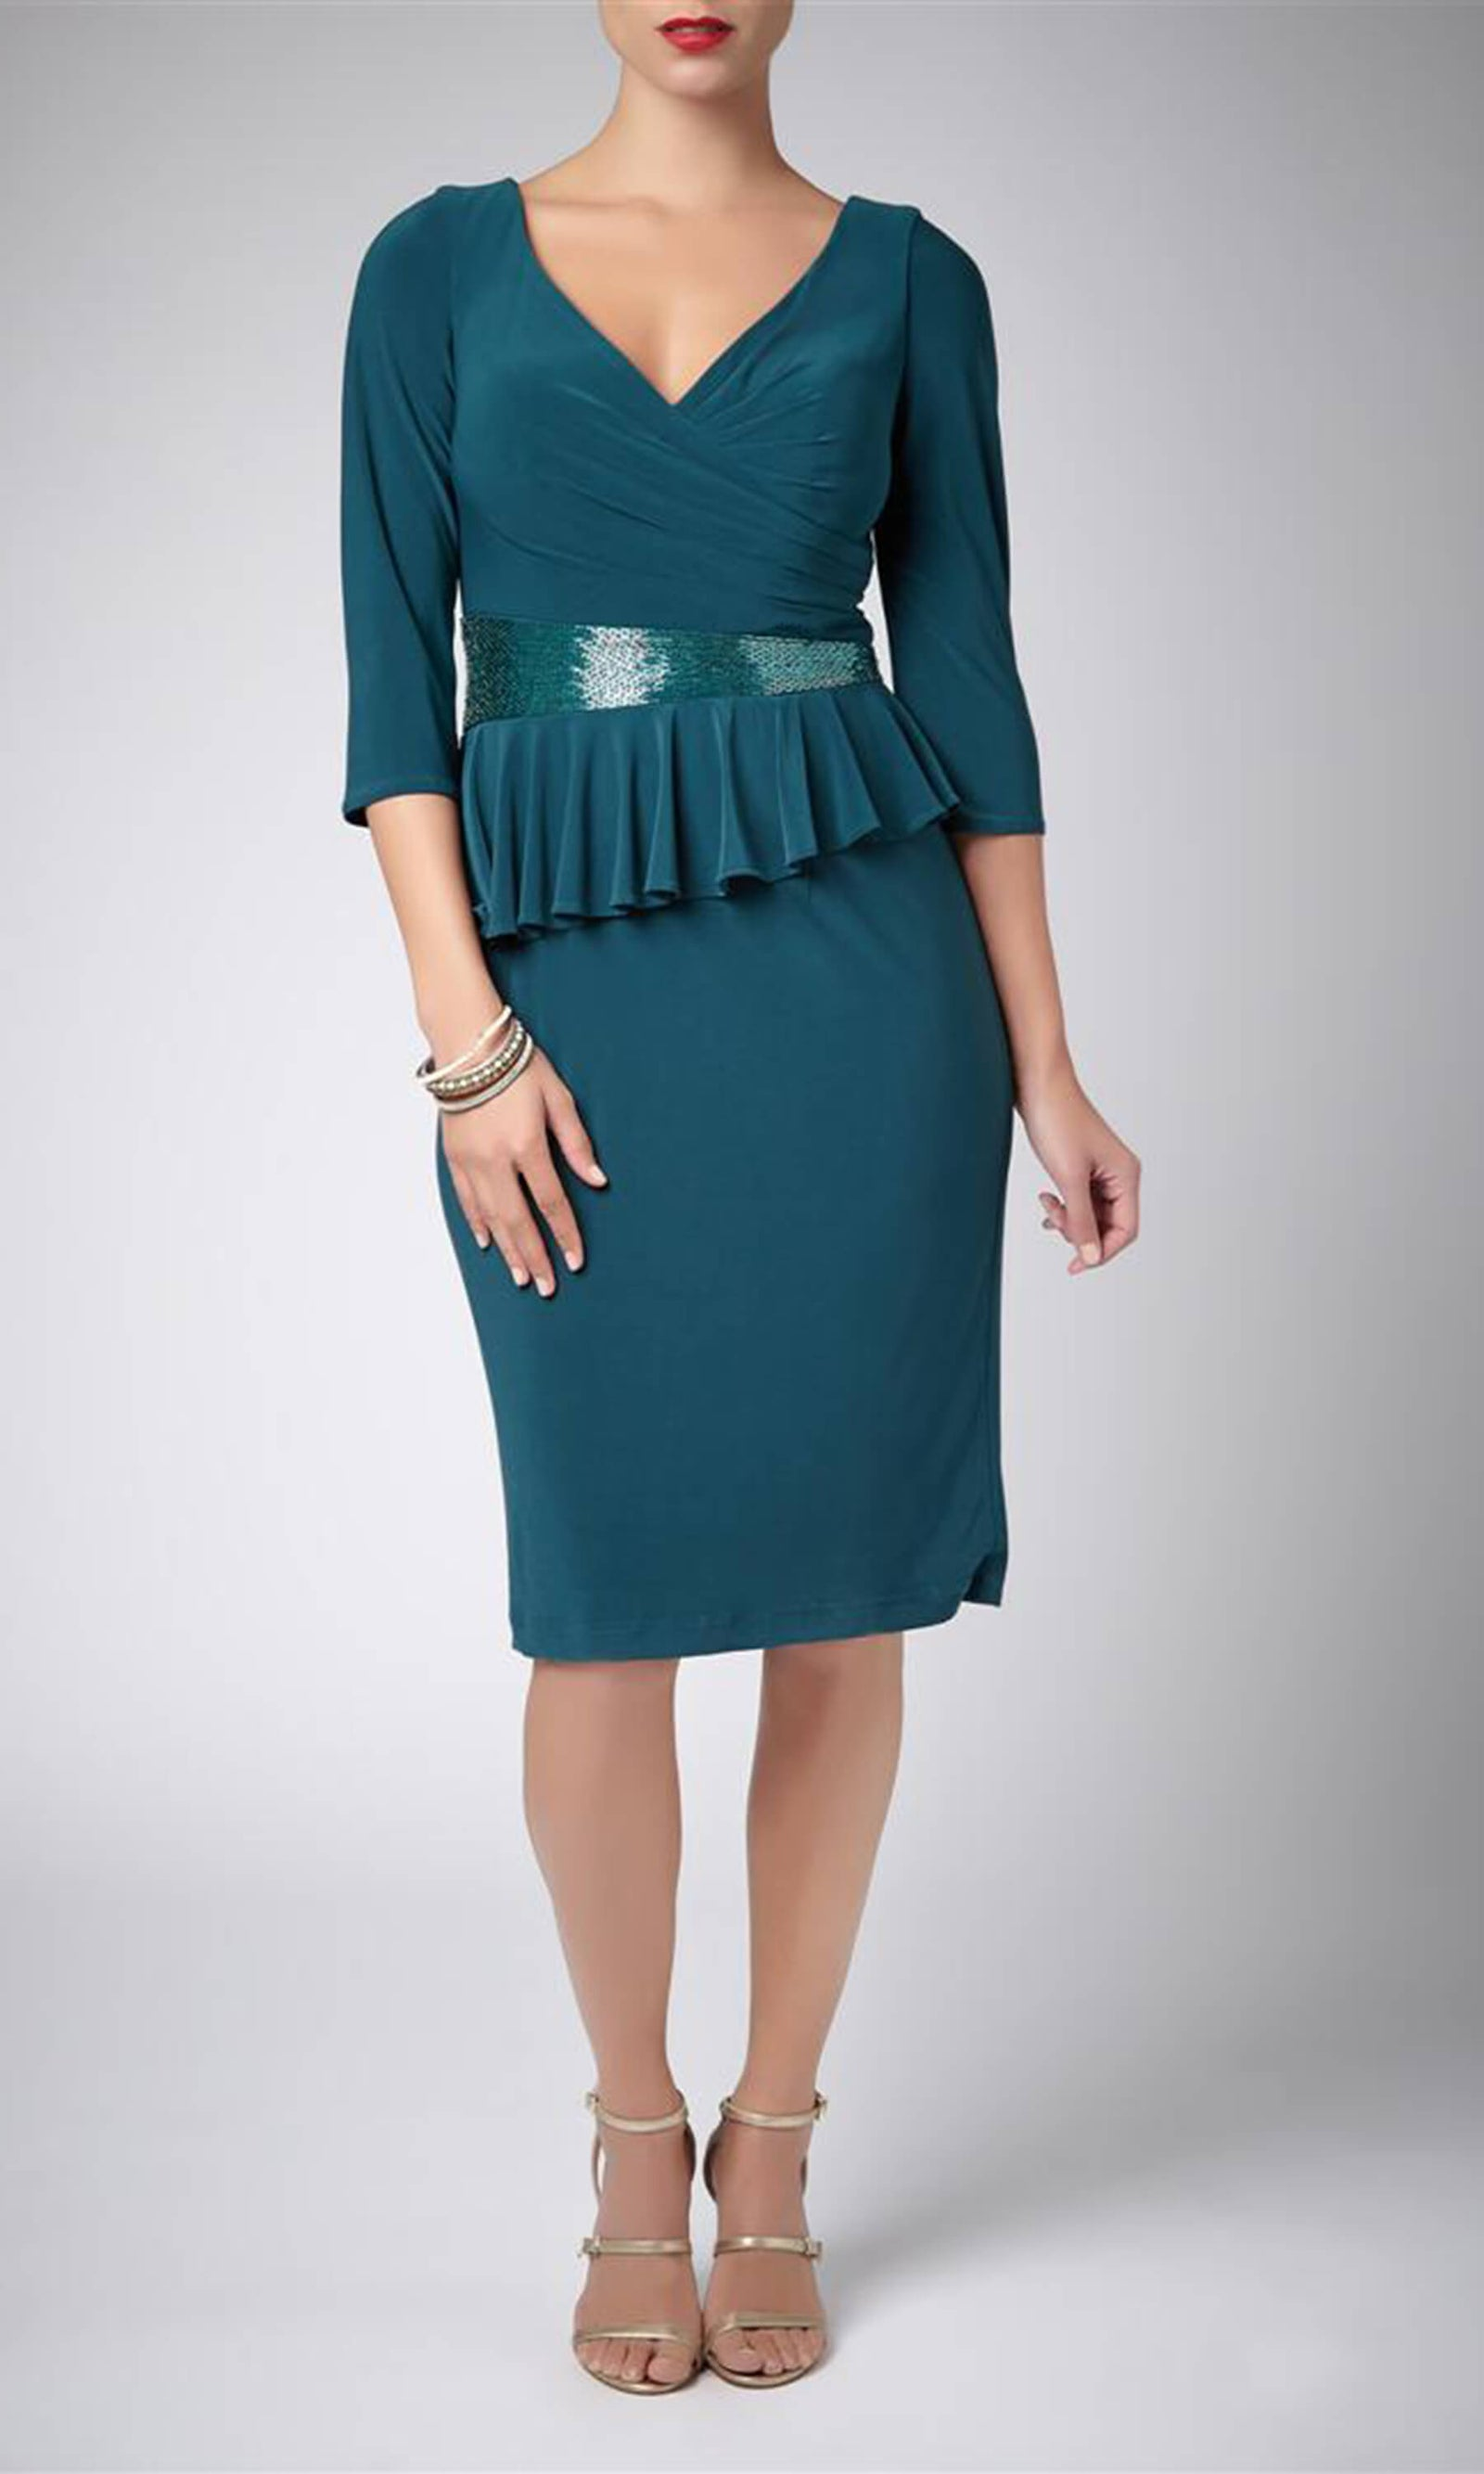 MC185144C Forest Green Mascara Peplum Cocktail Dress - Fab Frocks